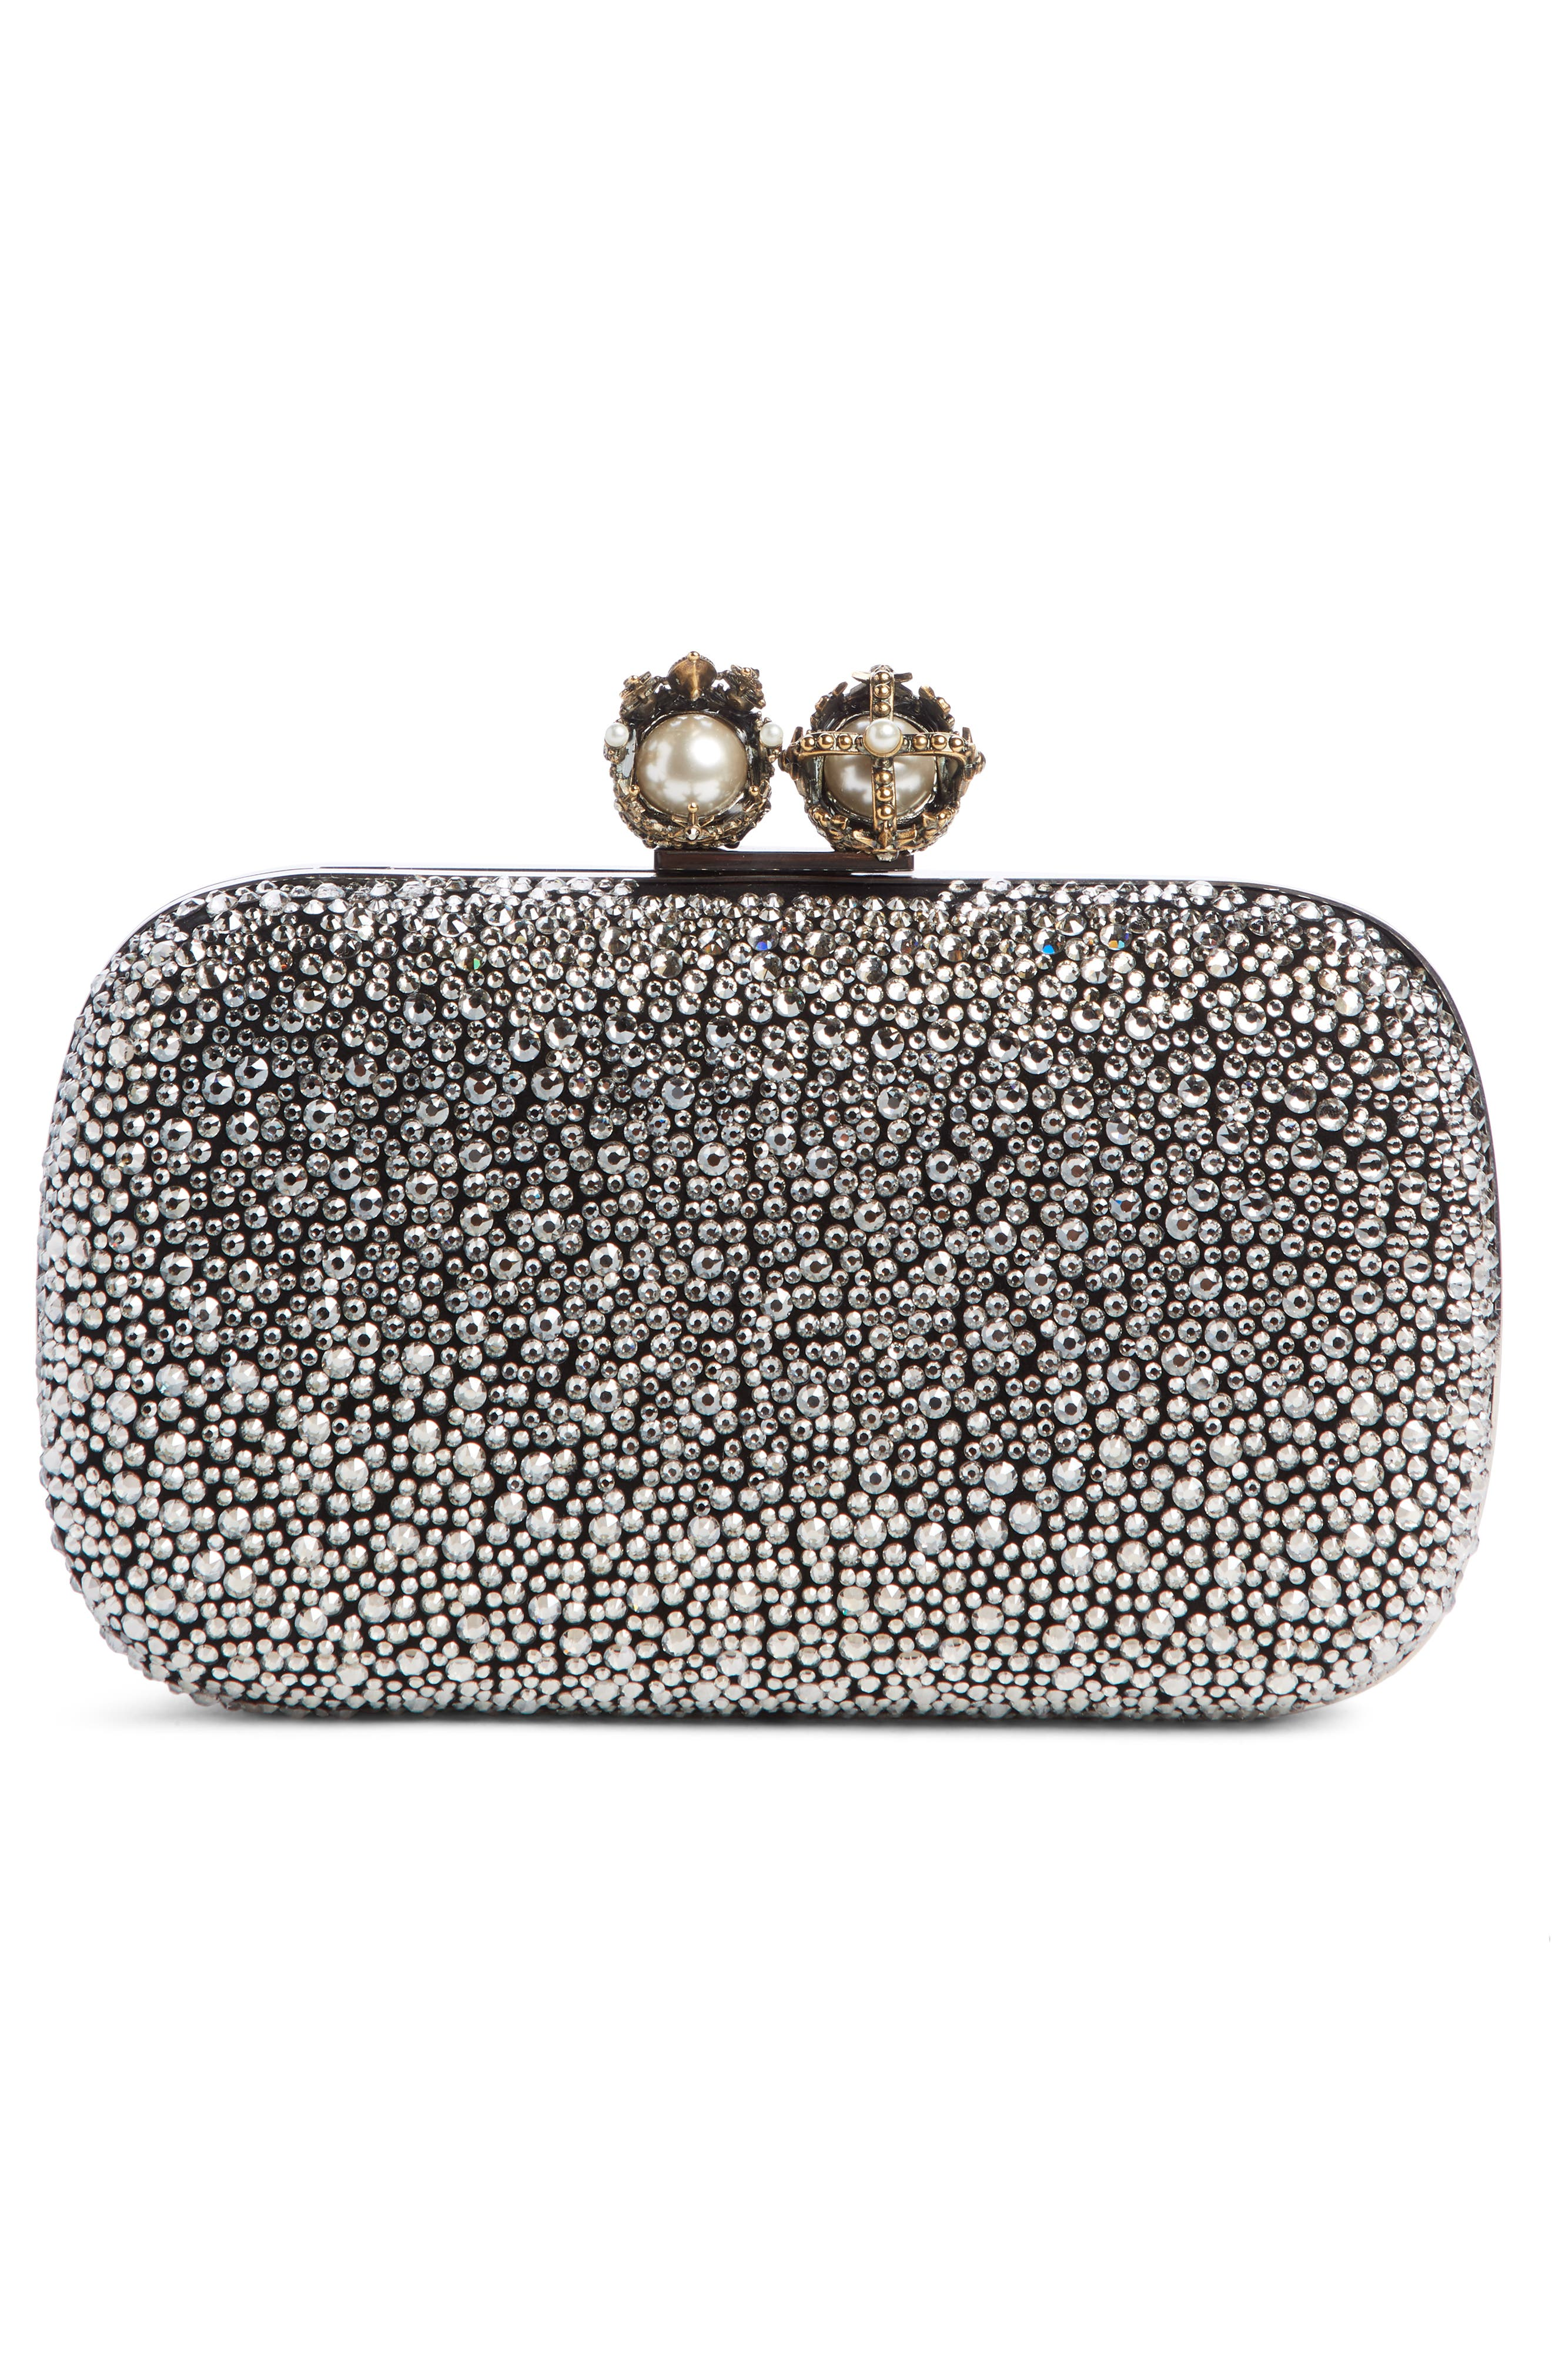 ALEXANDER MCQUEEN, Crystal Embellished Queen & King Clutch, Alternate thumbnail 3, color, BLACK